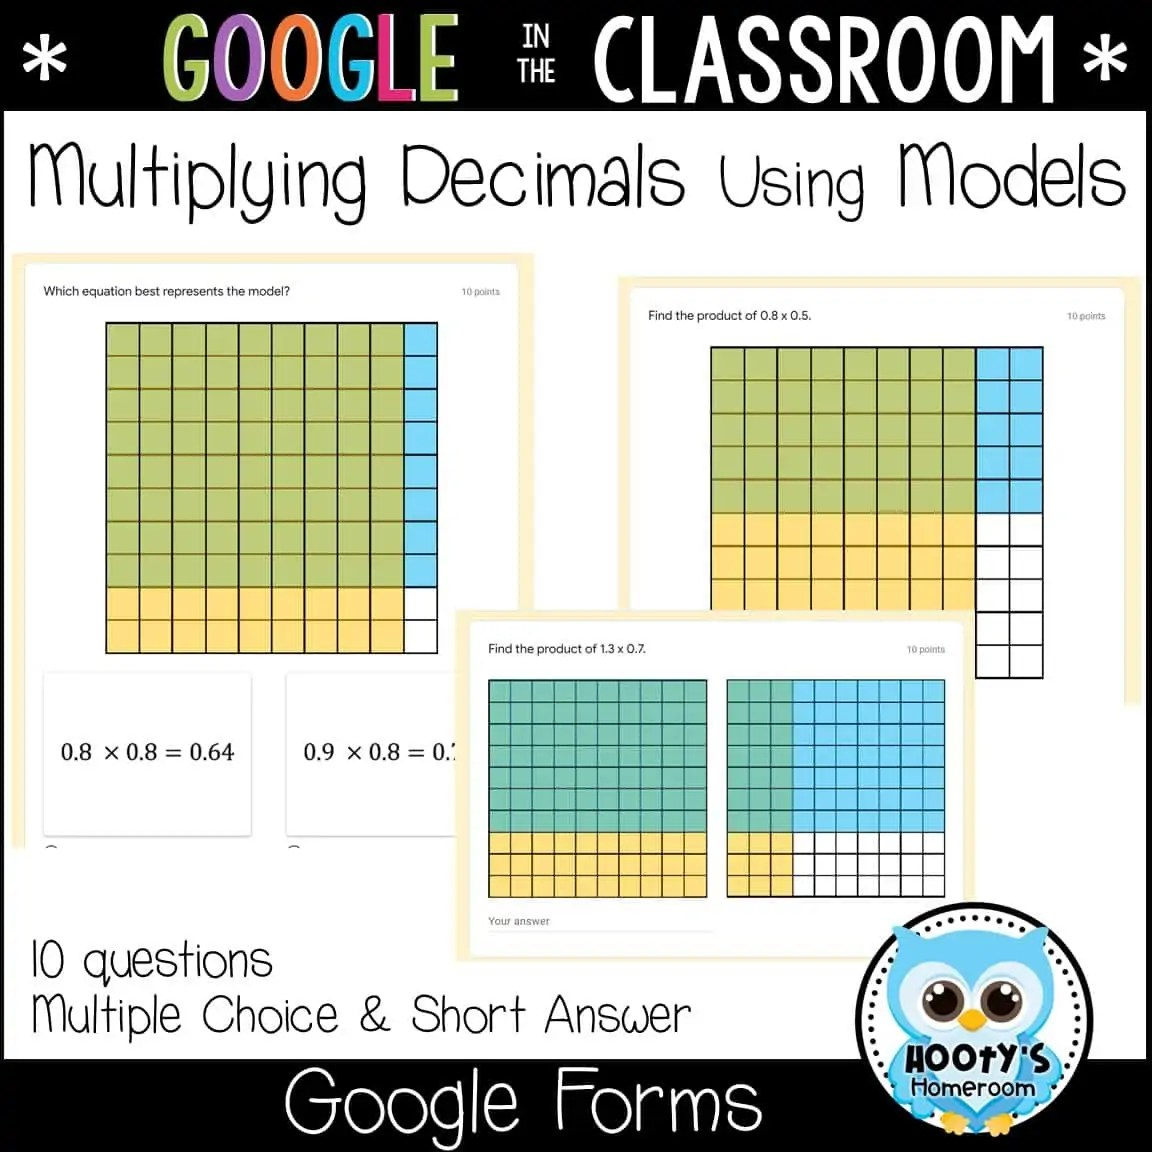 hight resolution of Multiplying Decimals Using Google Forms   Hooty's Homeroom